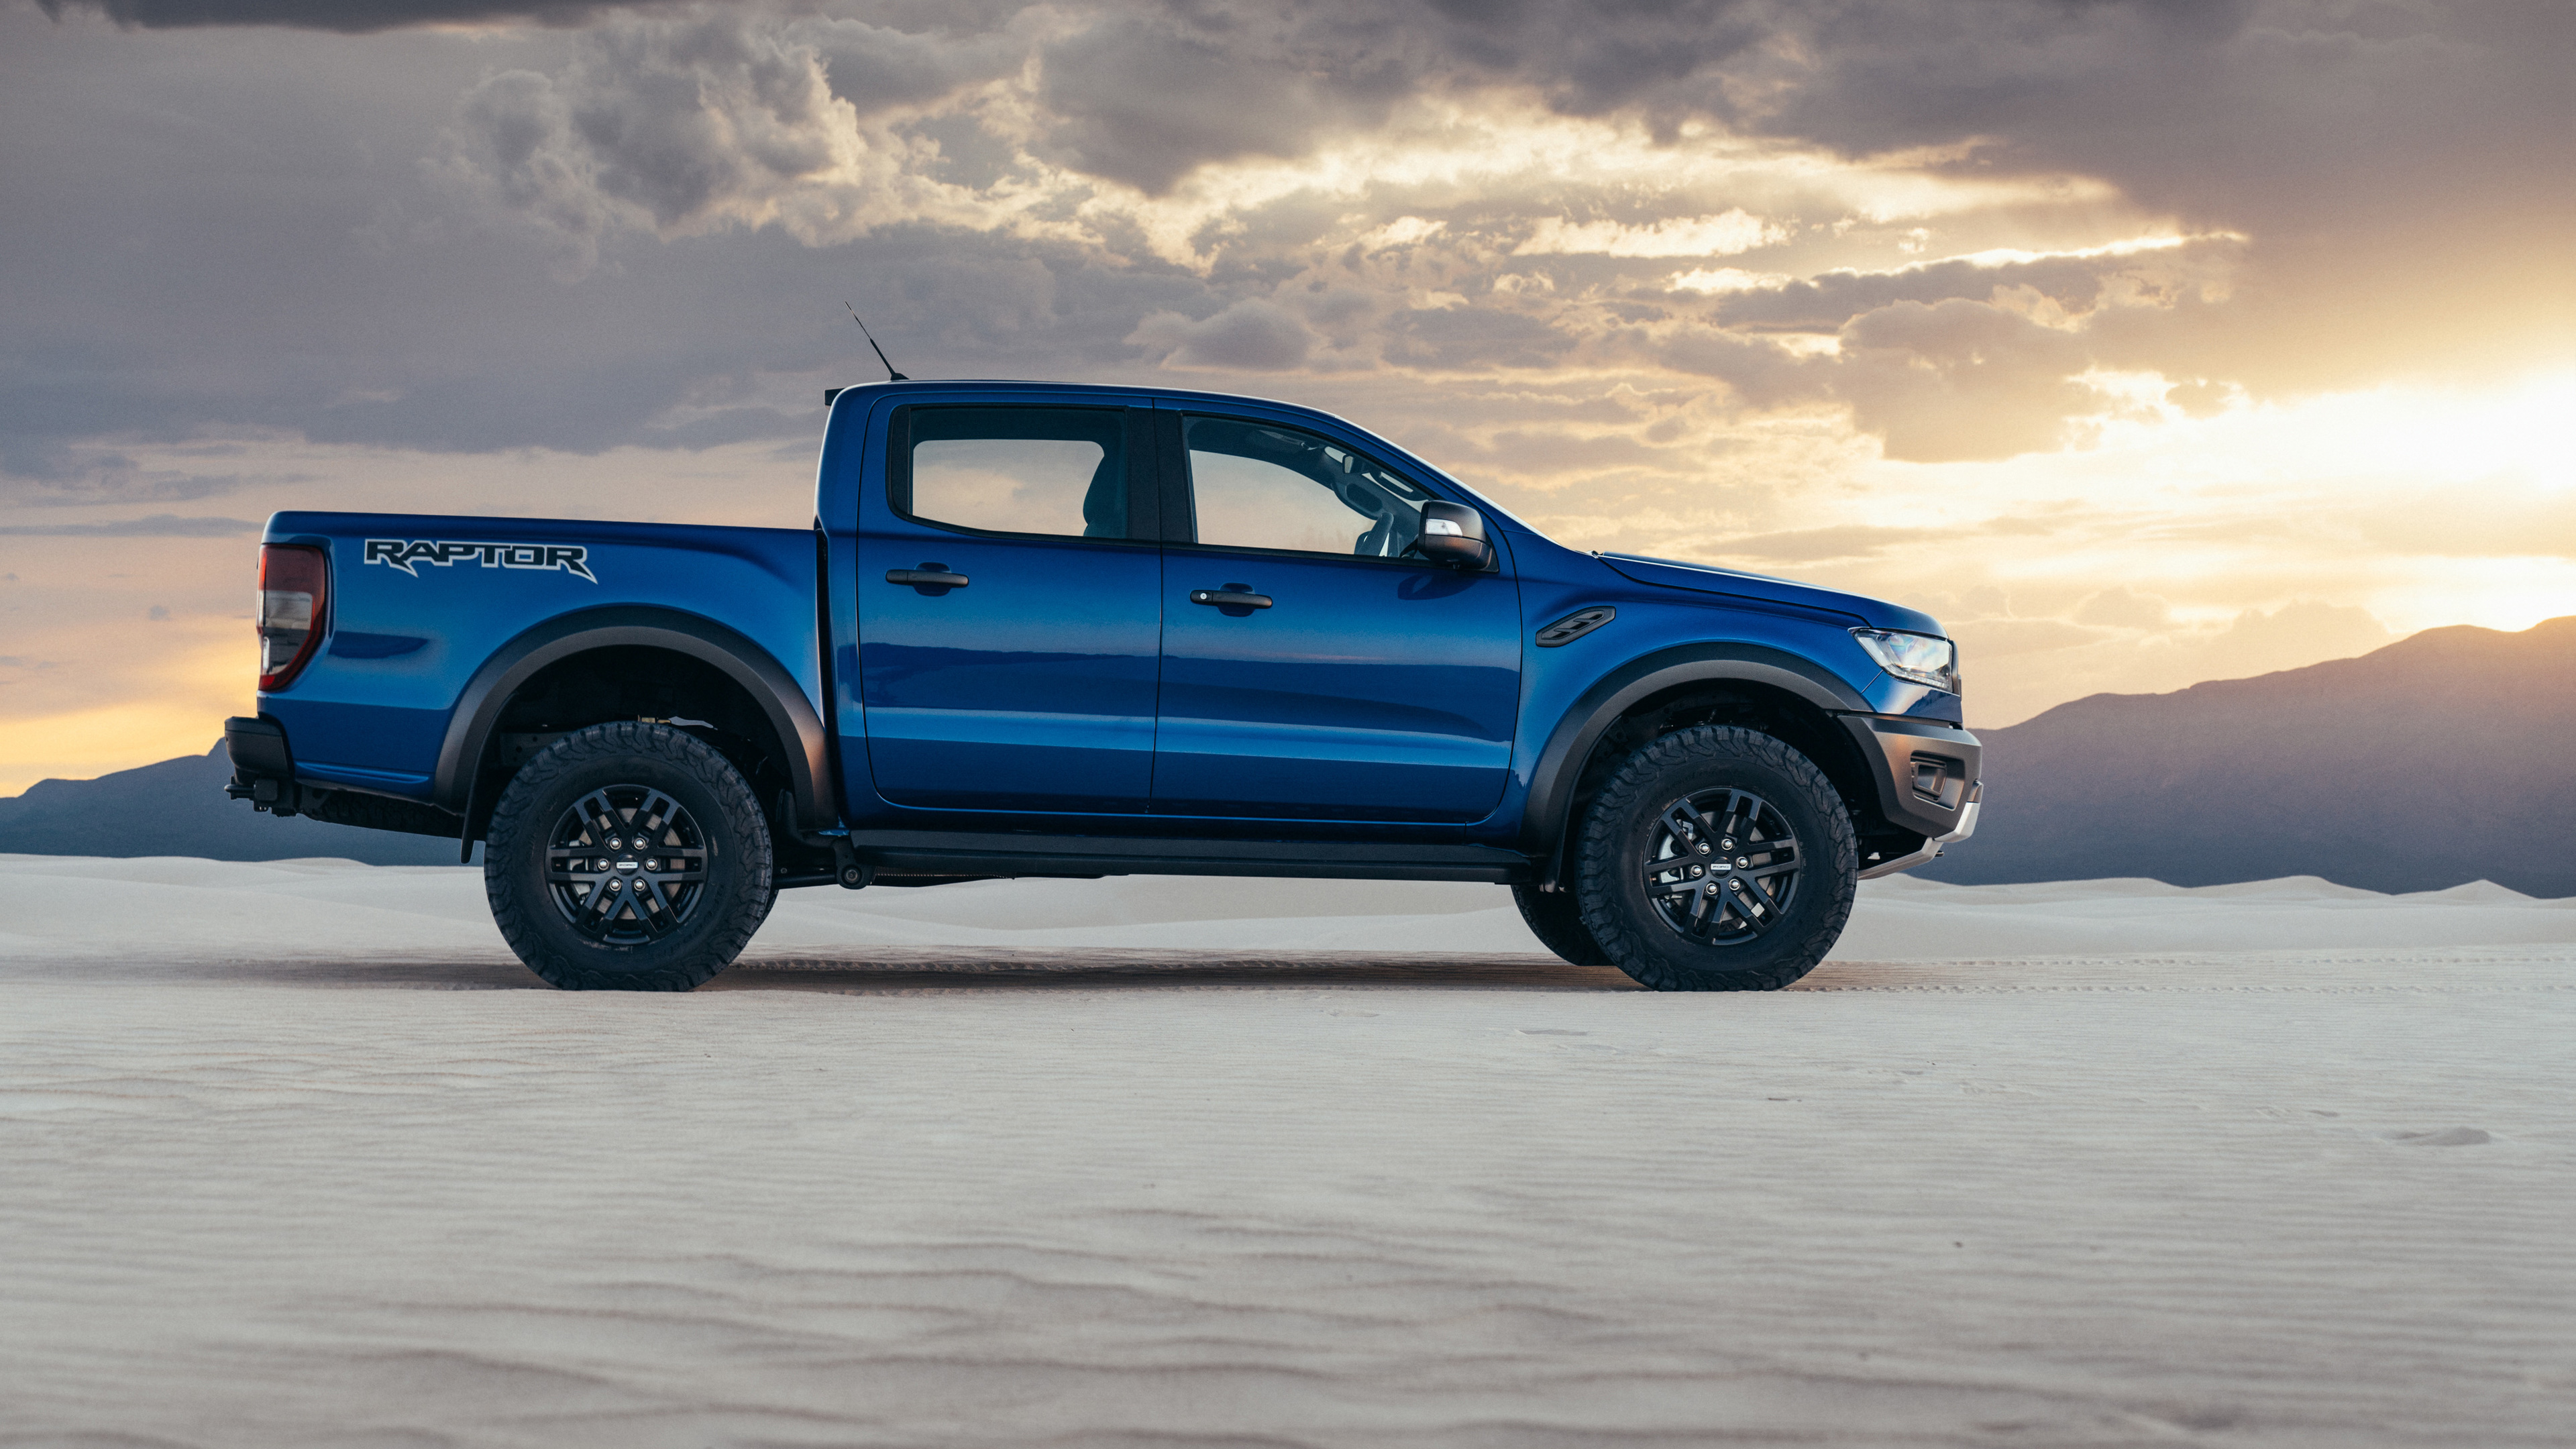 ford ranger raptor side view 2019 1539109271 - Ford Ranger Raptor Side View 2019 - truck wallpapers, hd-wallpapers, ford wallpapers, ford raptor wallpapers, ford ranger raptor wallpapers, cars wallpapers, 4k-wallpapers, 2019 cars wallpapers